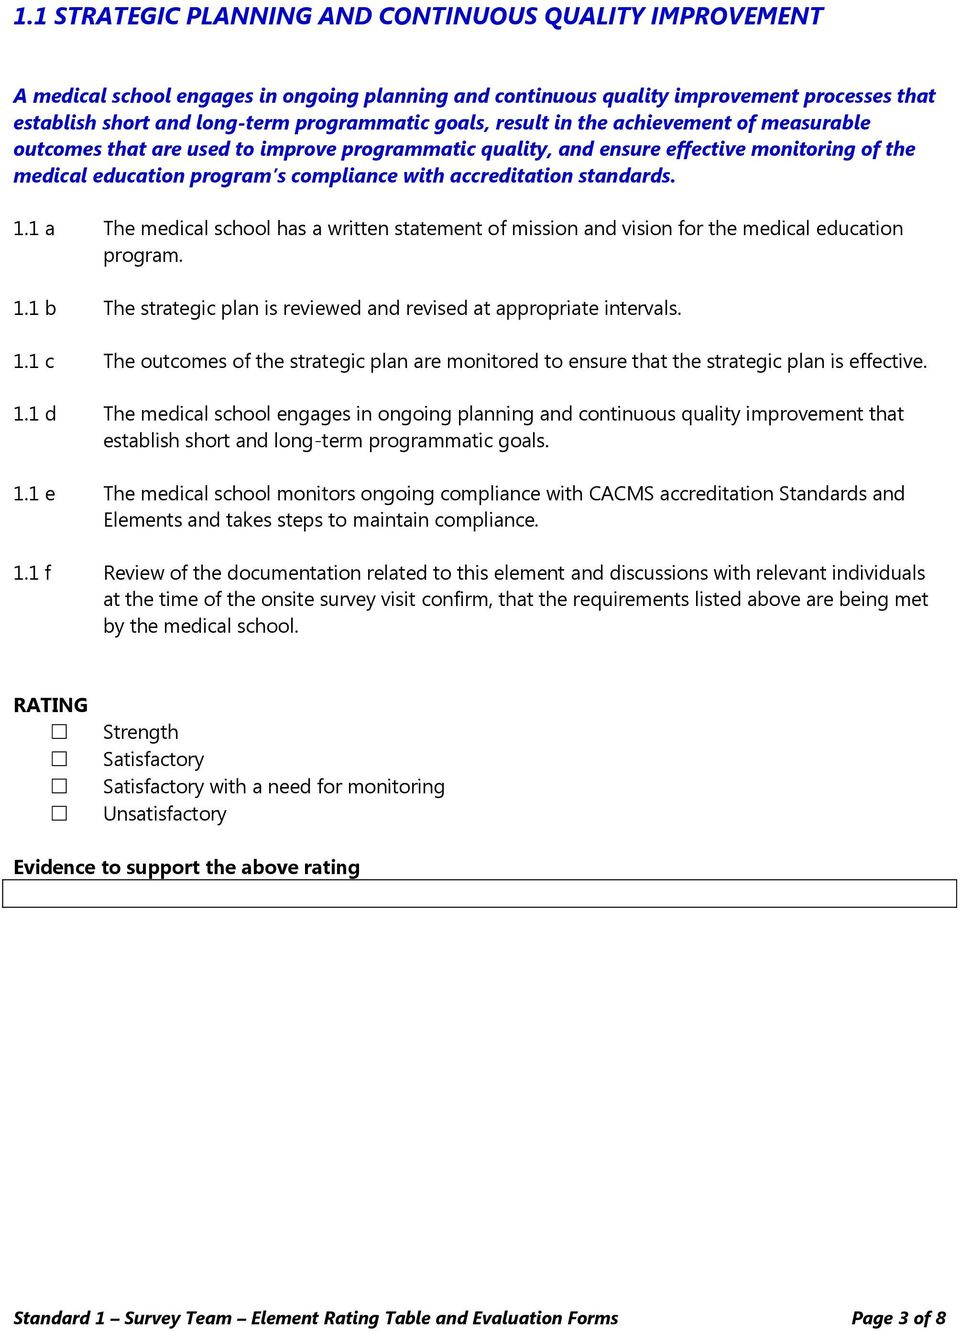 standards. 1.1 a The medical school has a written statement of mission and vision for the medical education program. 1.1 b The strategic plan is reviewed and revised at appropriate intervals. 1.1 c The outcomes of the strategic plan are monitored to ensure that the strategic plan is effective.